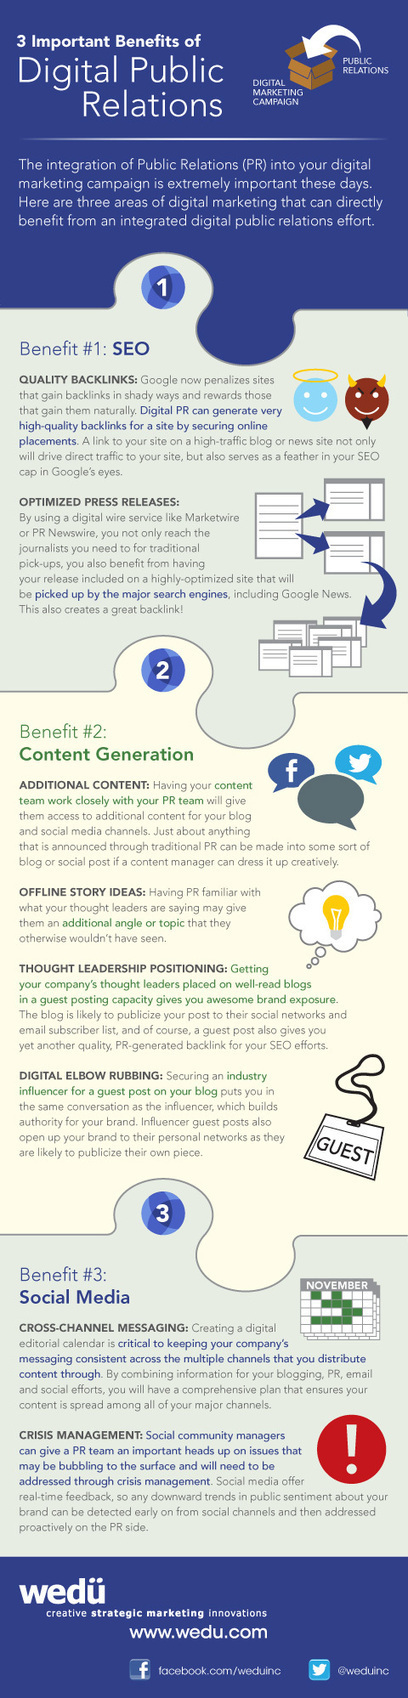 3 Important Benefits of Digital Public Relations (Infographic) | Social Media Today | Marketing & Webmarketing | Scoop.it